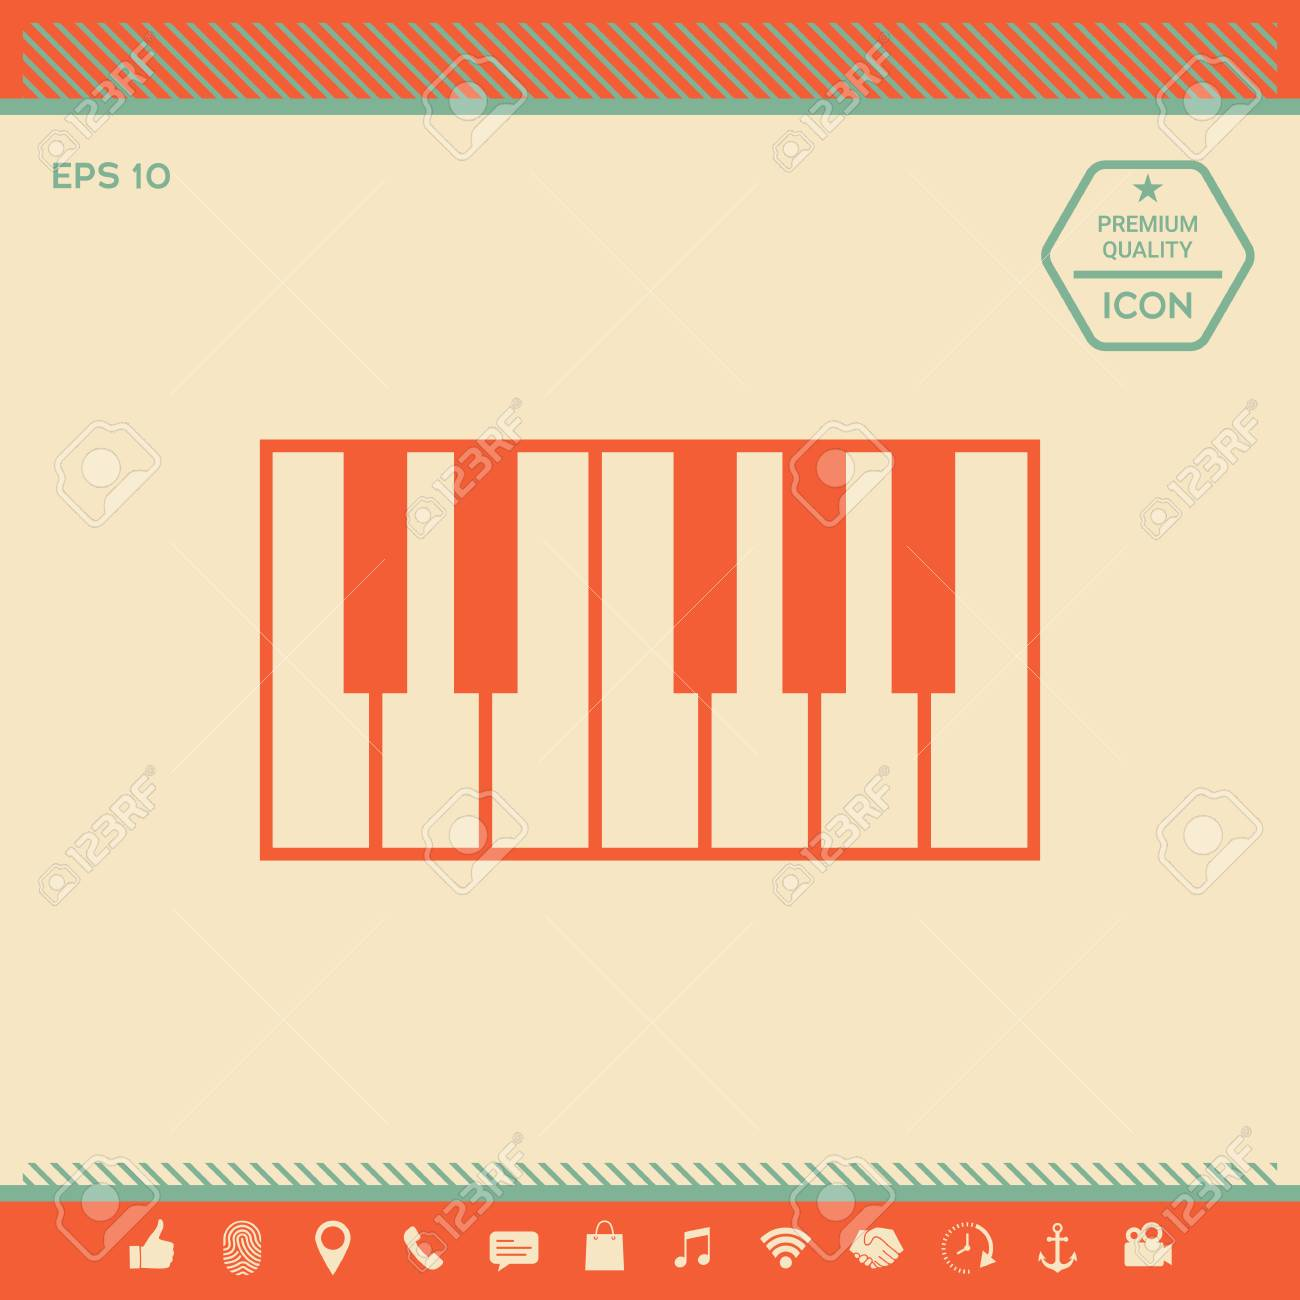 Piano keyboard icon   Signs and symbols - graphic elements for